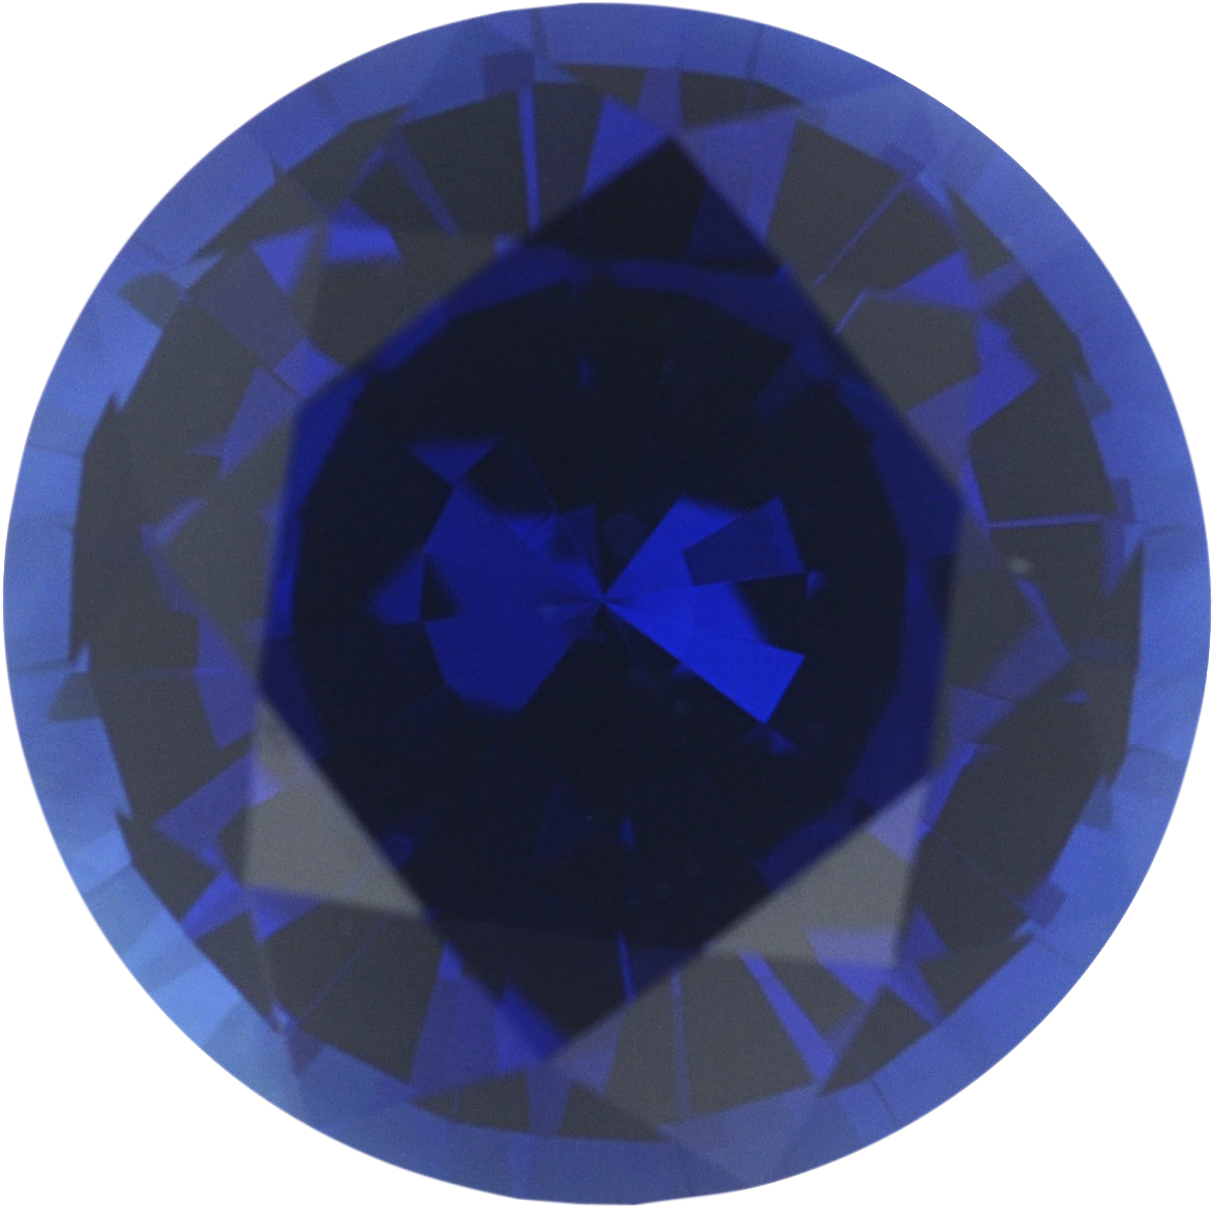 Fabulous Loose Blue Sapphire Gem in Round Cut, Vivid Violetish Blue, 5.78 mm, 0.89 carats